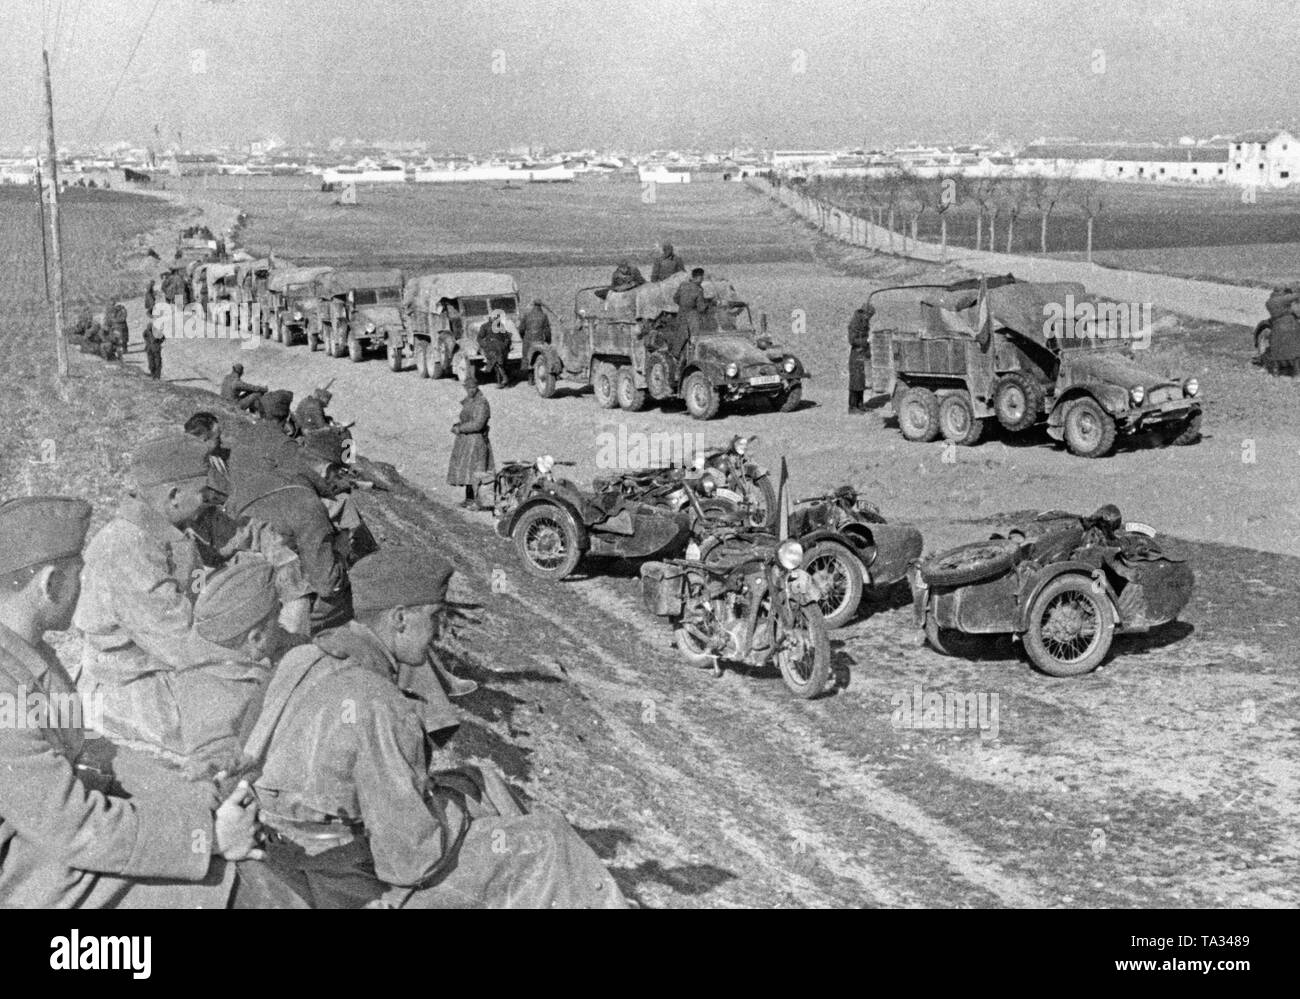 An antiaircraft battery of the German Condor Legion takes rest on a road at Toledo during the last battles of the Spanish Civil War on March 28, 1939. On the right in the foreground, Kradschuetze (motorcycle mounted infantrymen) are having a rest. Their motorcycles of the type BMW R12 (partly with sidecar) are parked on the roadside. Behind, a convoy of trucks of the type Krupp L2 H143. - Stock Image